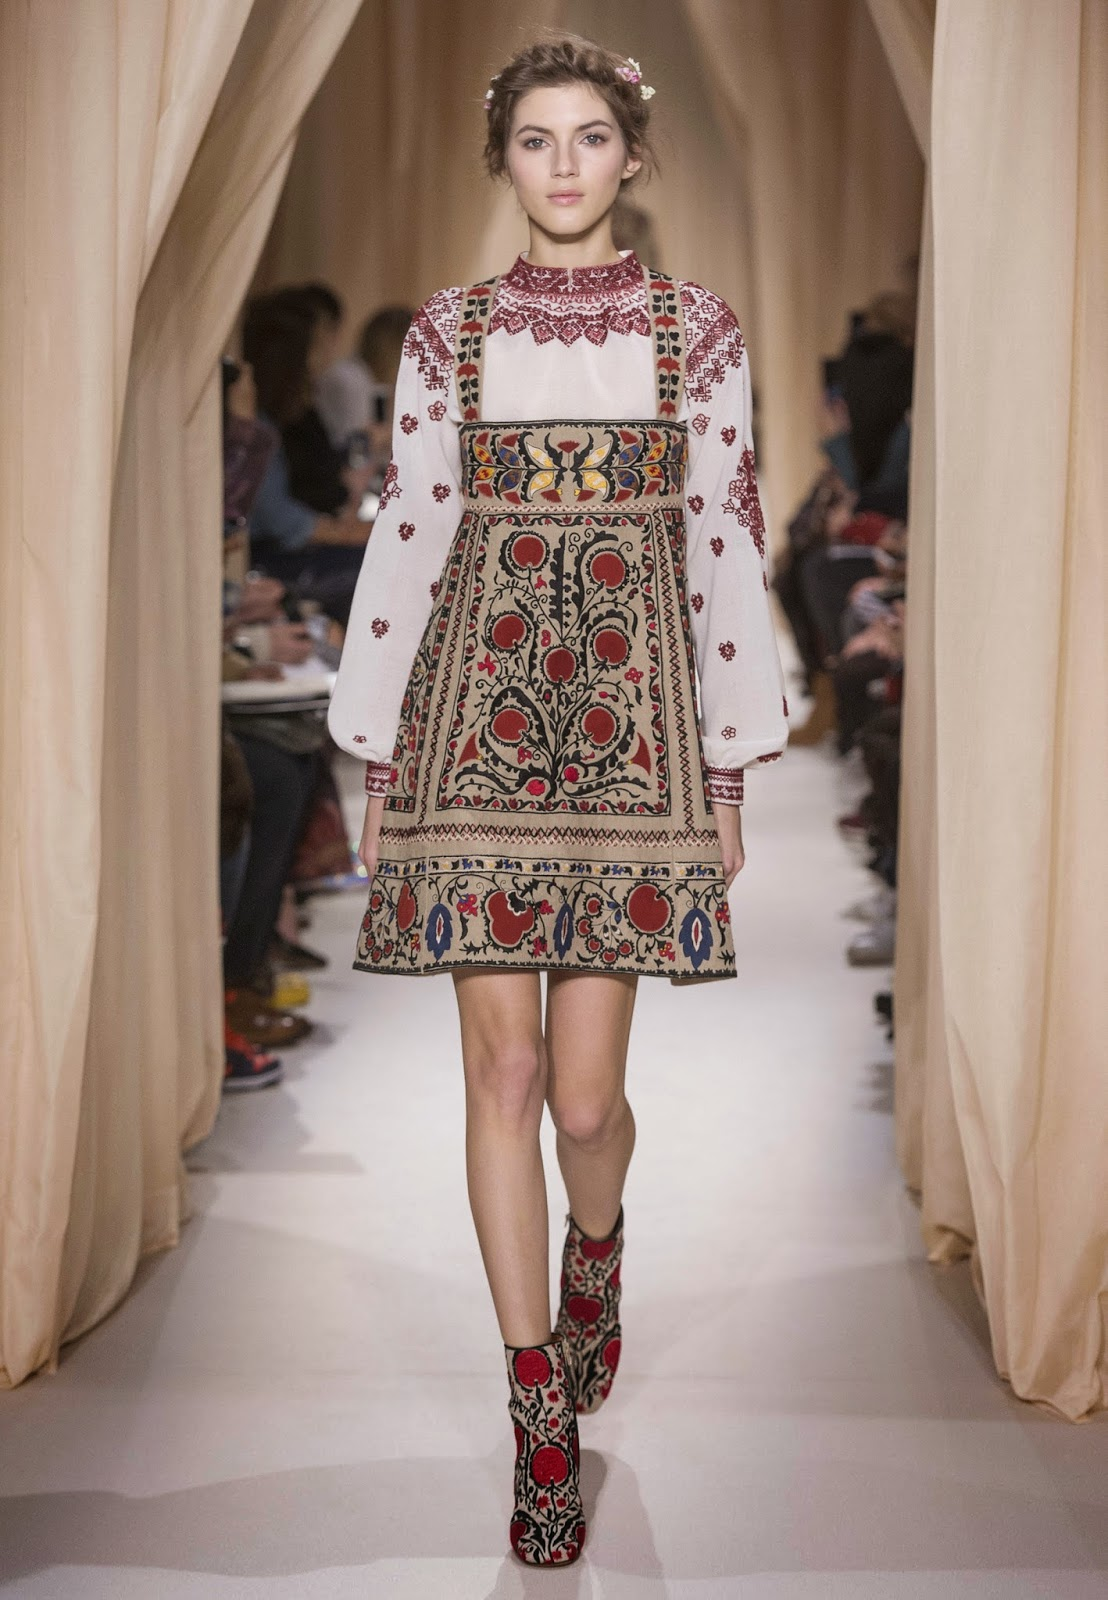 Love With The Newest Collection Of Valentino Here Is My Selection Tunics And Dresses Ukrainian Folk Style Like At Much More Affordable Prices